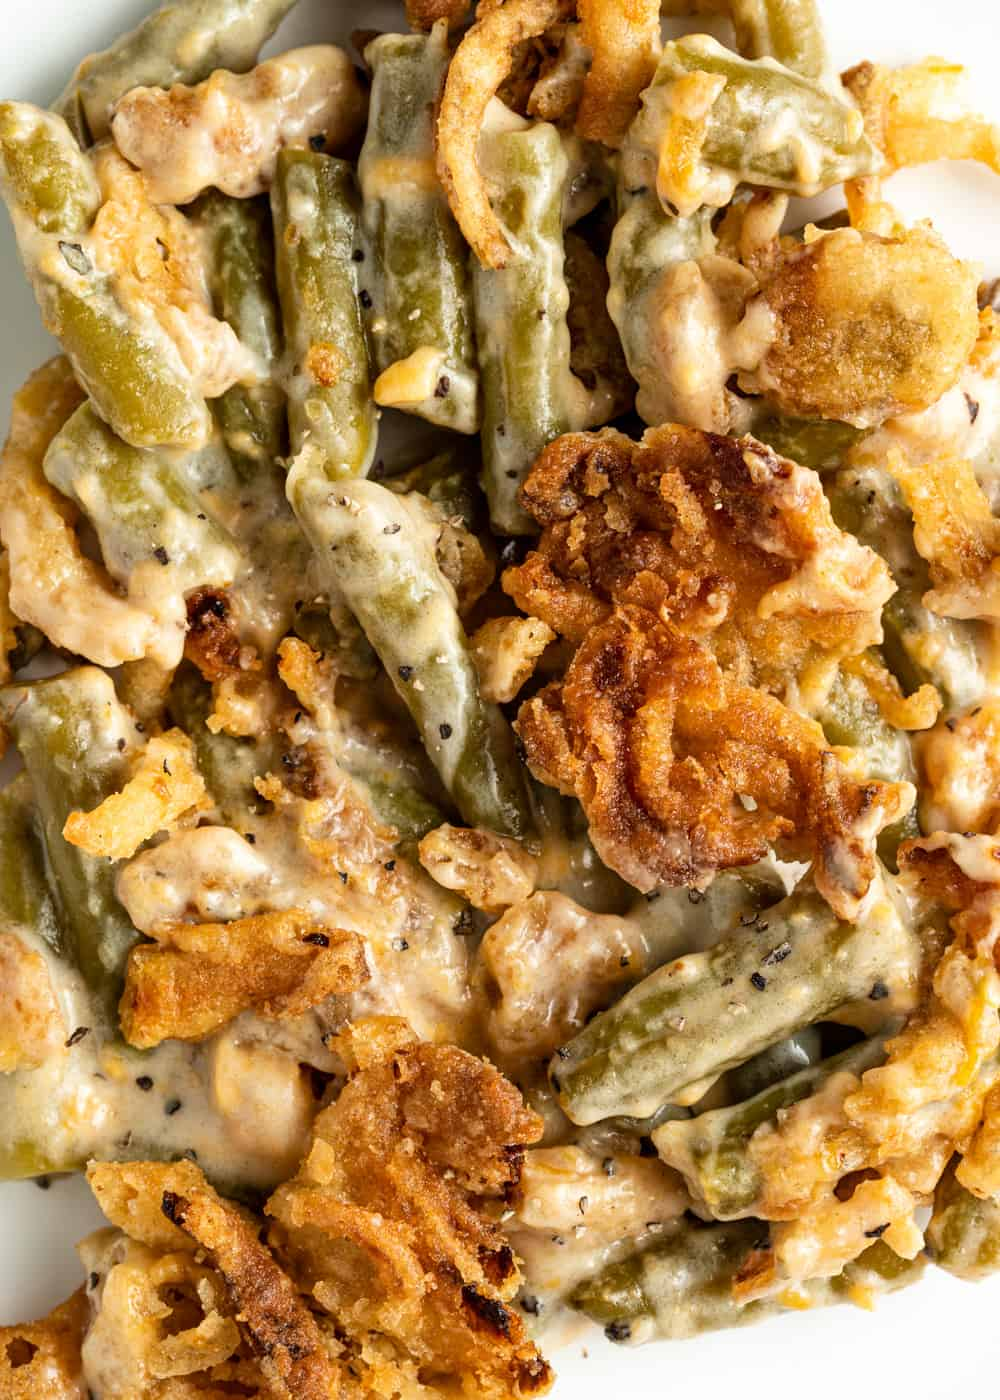 close up of French's green bean casserole